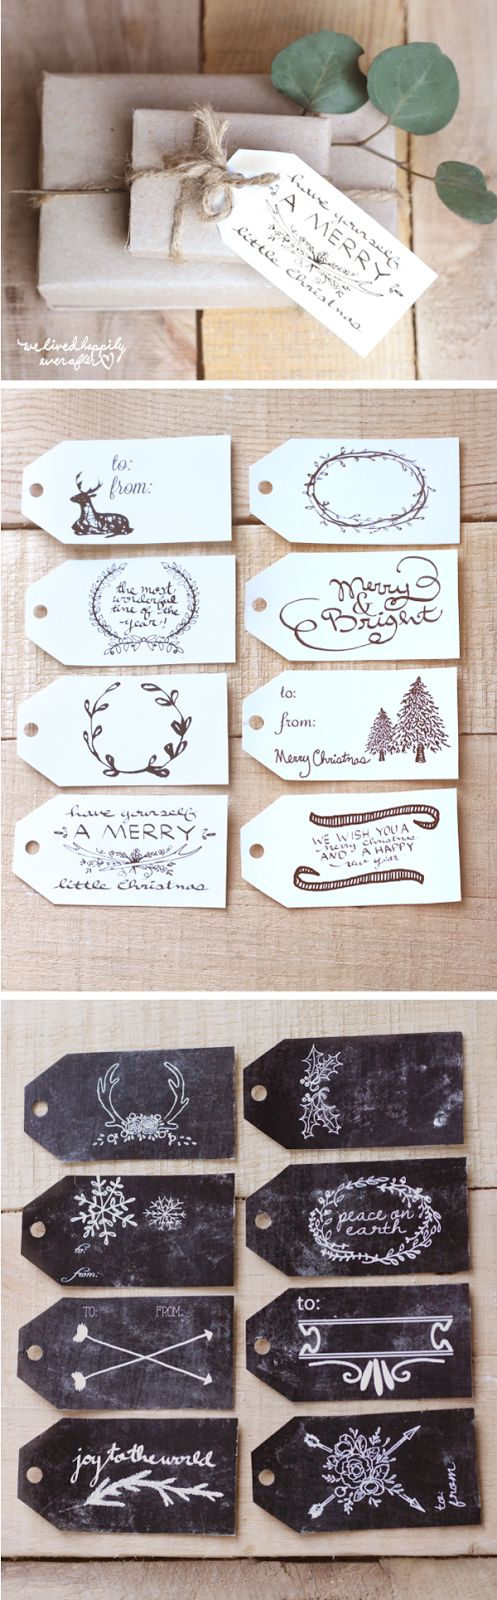 FREE printable Christmas Gift tags | We Lived Happily Ever After